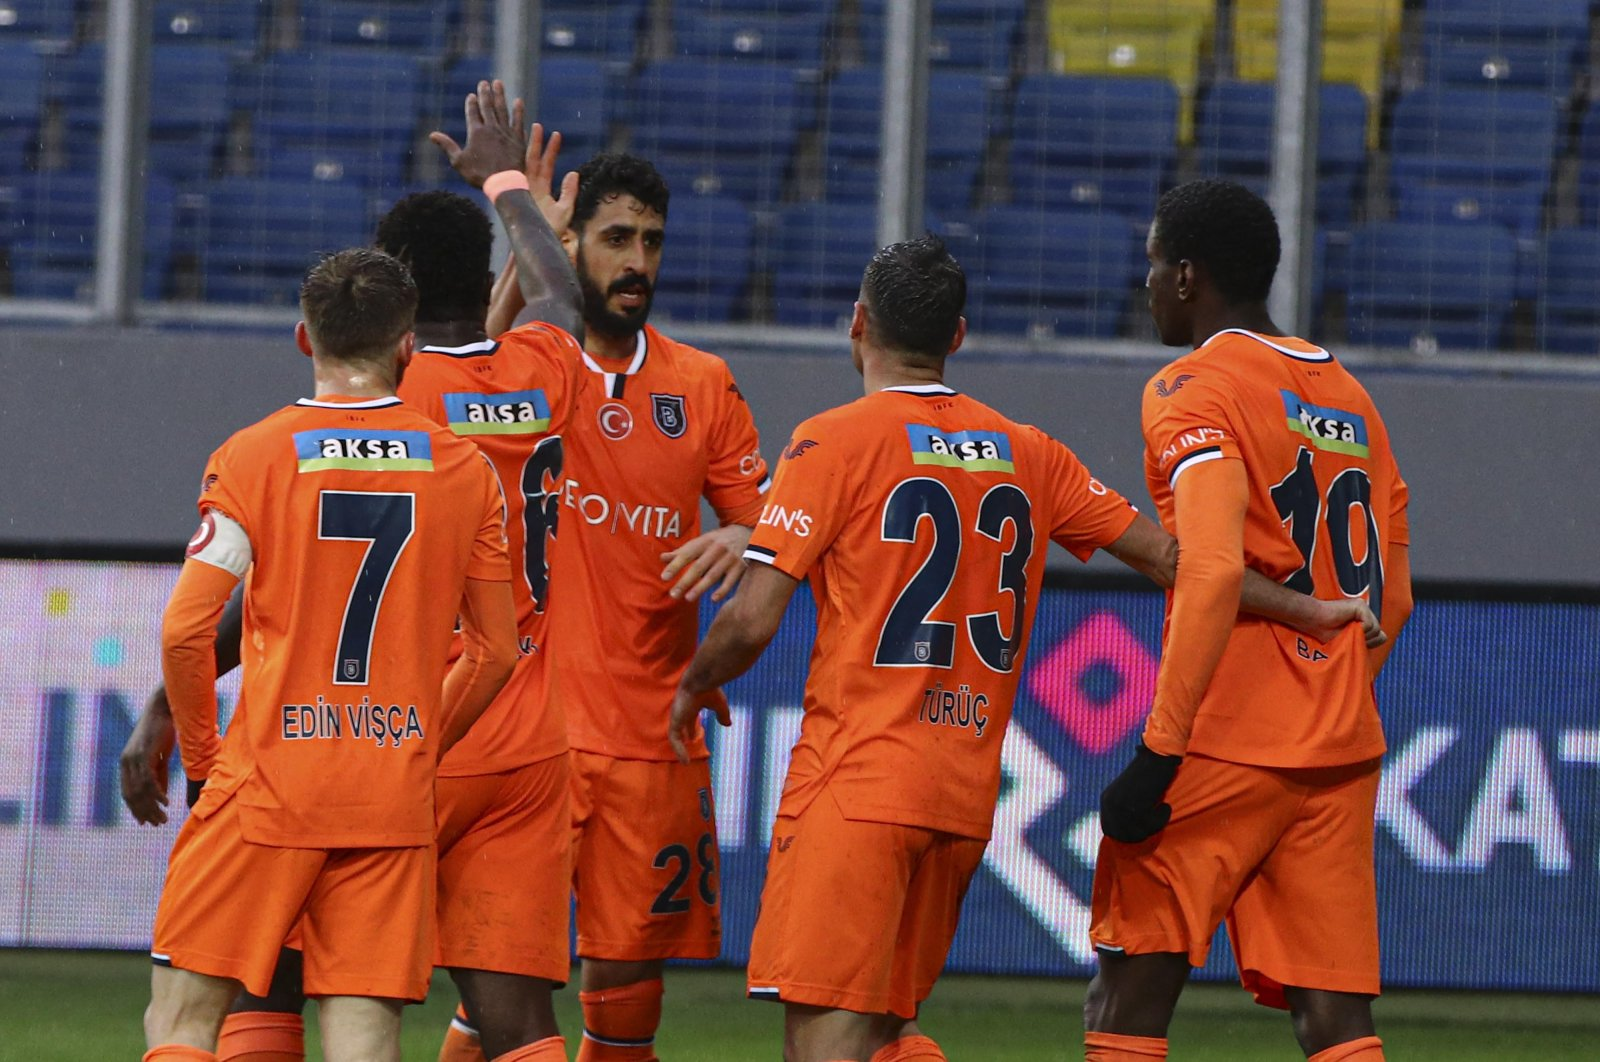 Başakşehir players celebrate a goal against Gençlerbirliği in a Turkish Süper Lig match, Ankara, Turkey, March 7, 2021. (DHA Photo)